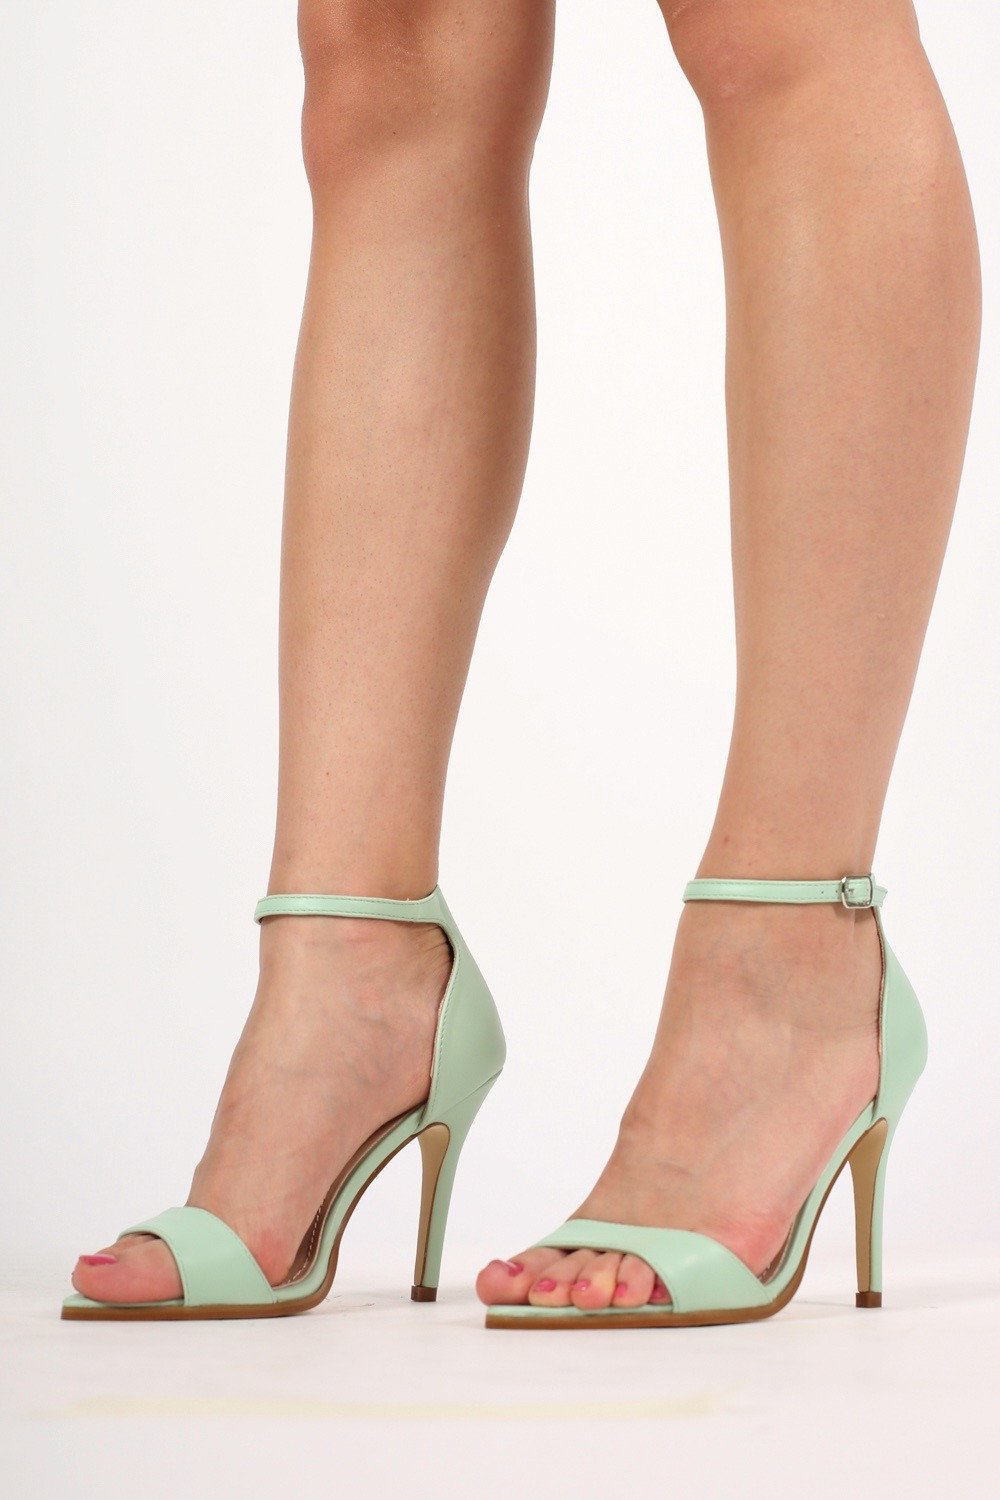 Maya Barely There Strappy High Heel Sandals in Mint Green MODEL FRONT